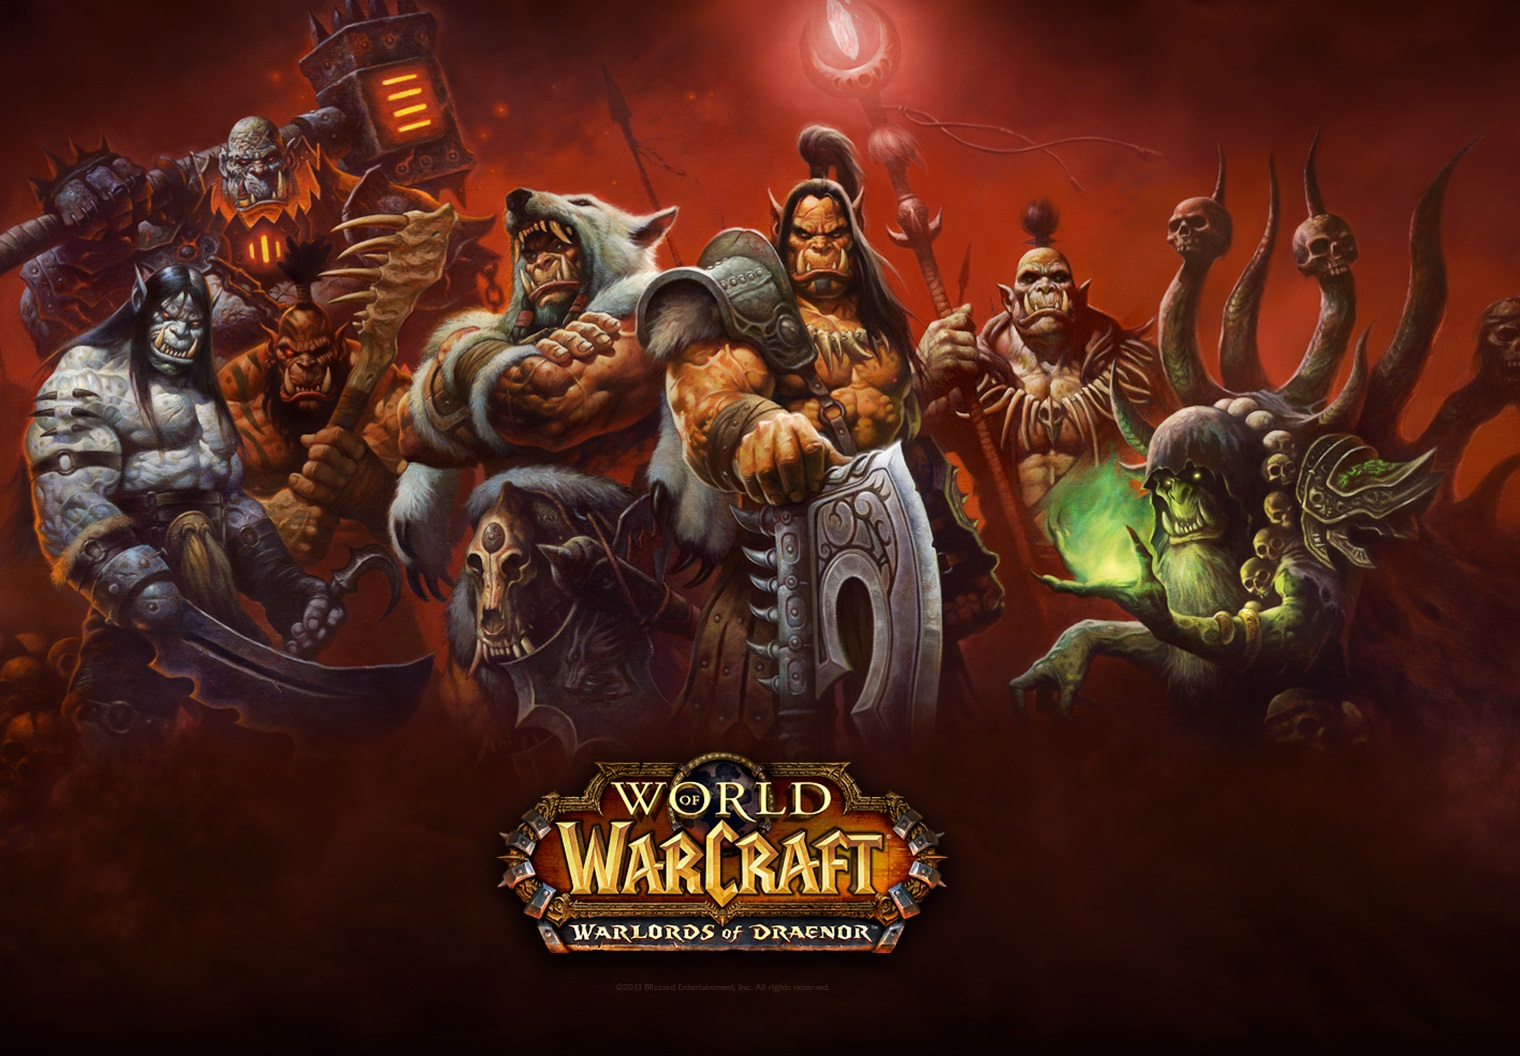 World of Warcraft Warlords of Draenor Pre-Purchase Now Available